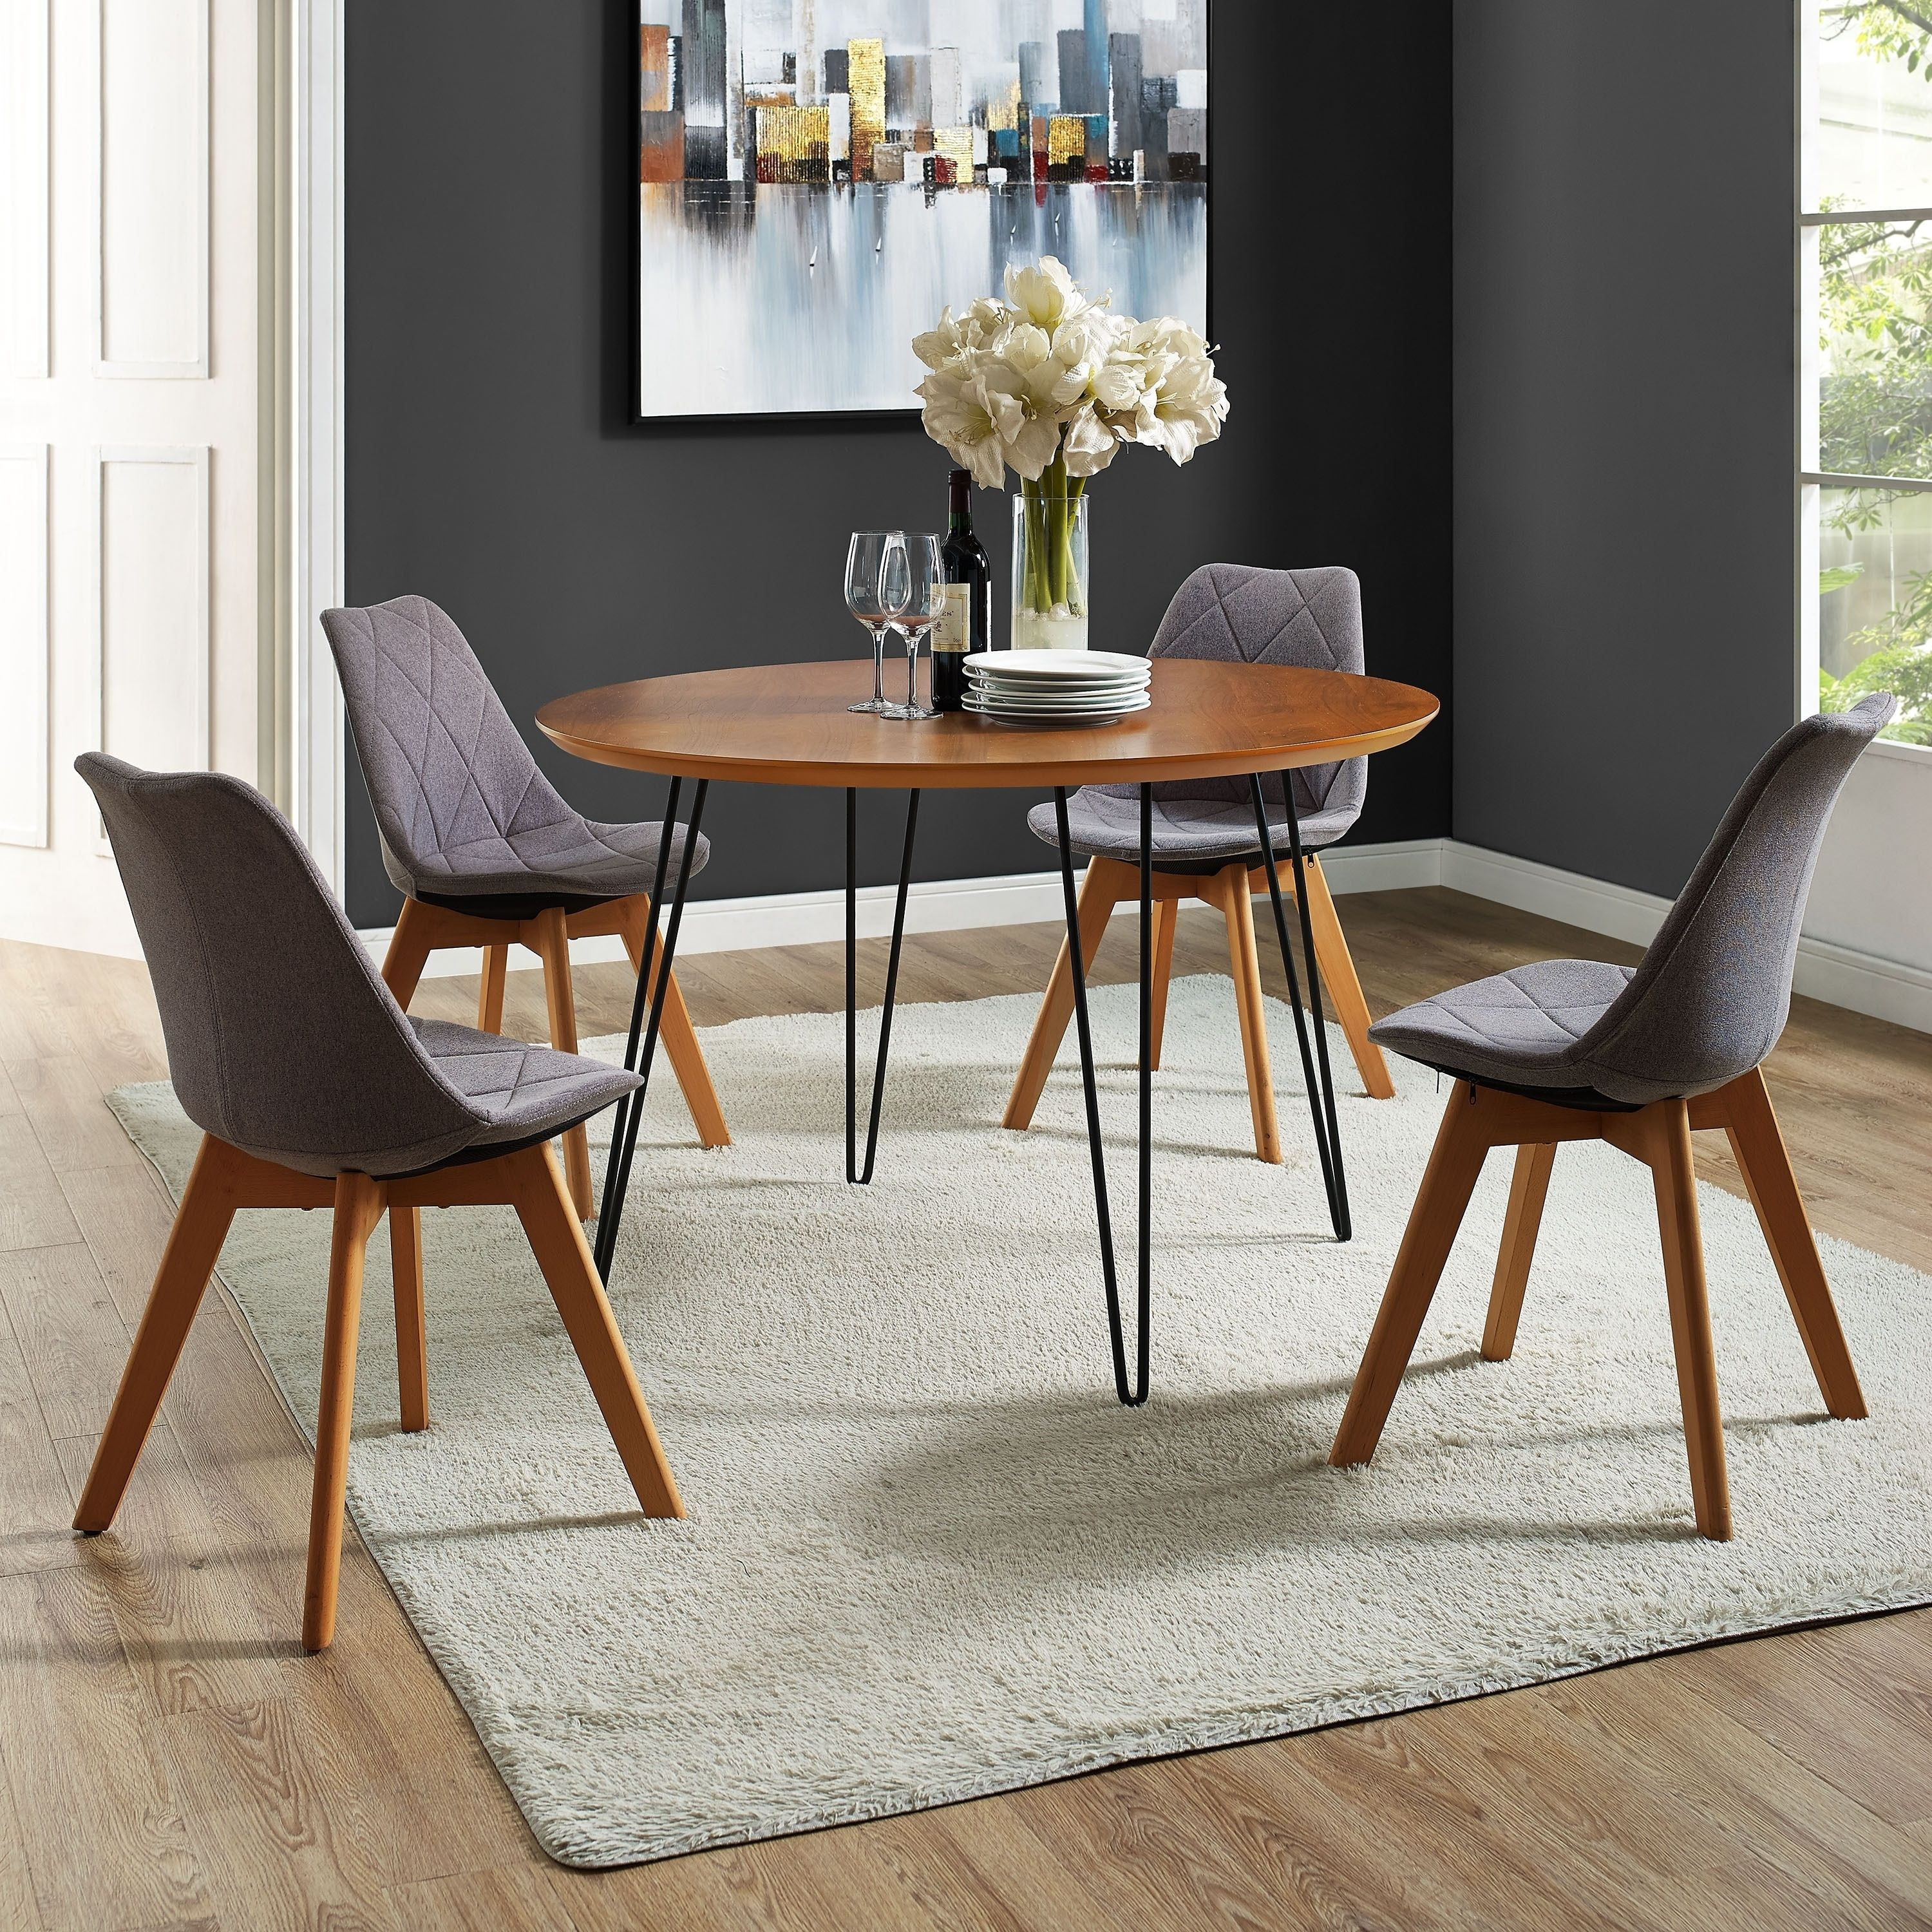 46 Inch Round Table.Palm Canyon Granito 46 Inch Round Hairpin Leg Walnut Brown Dining